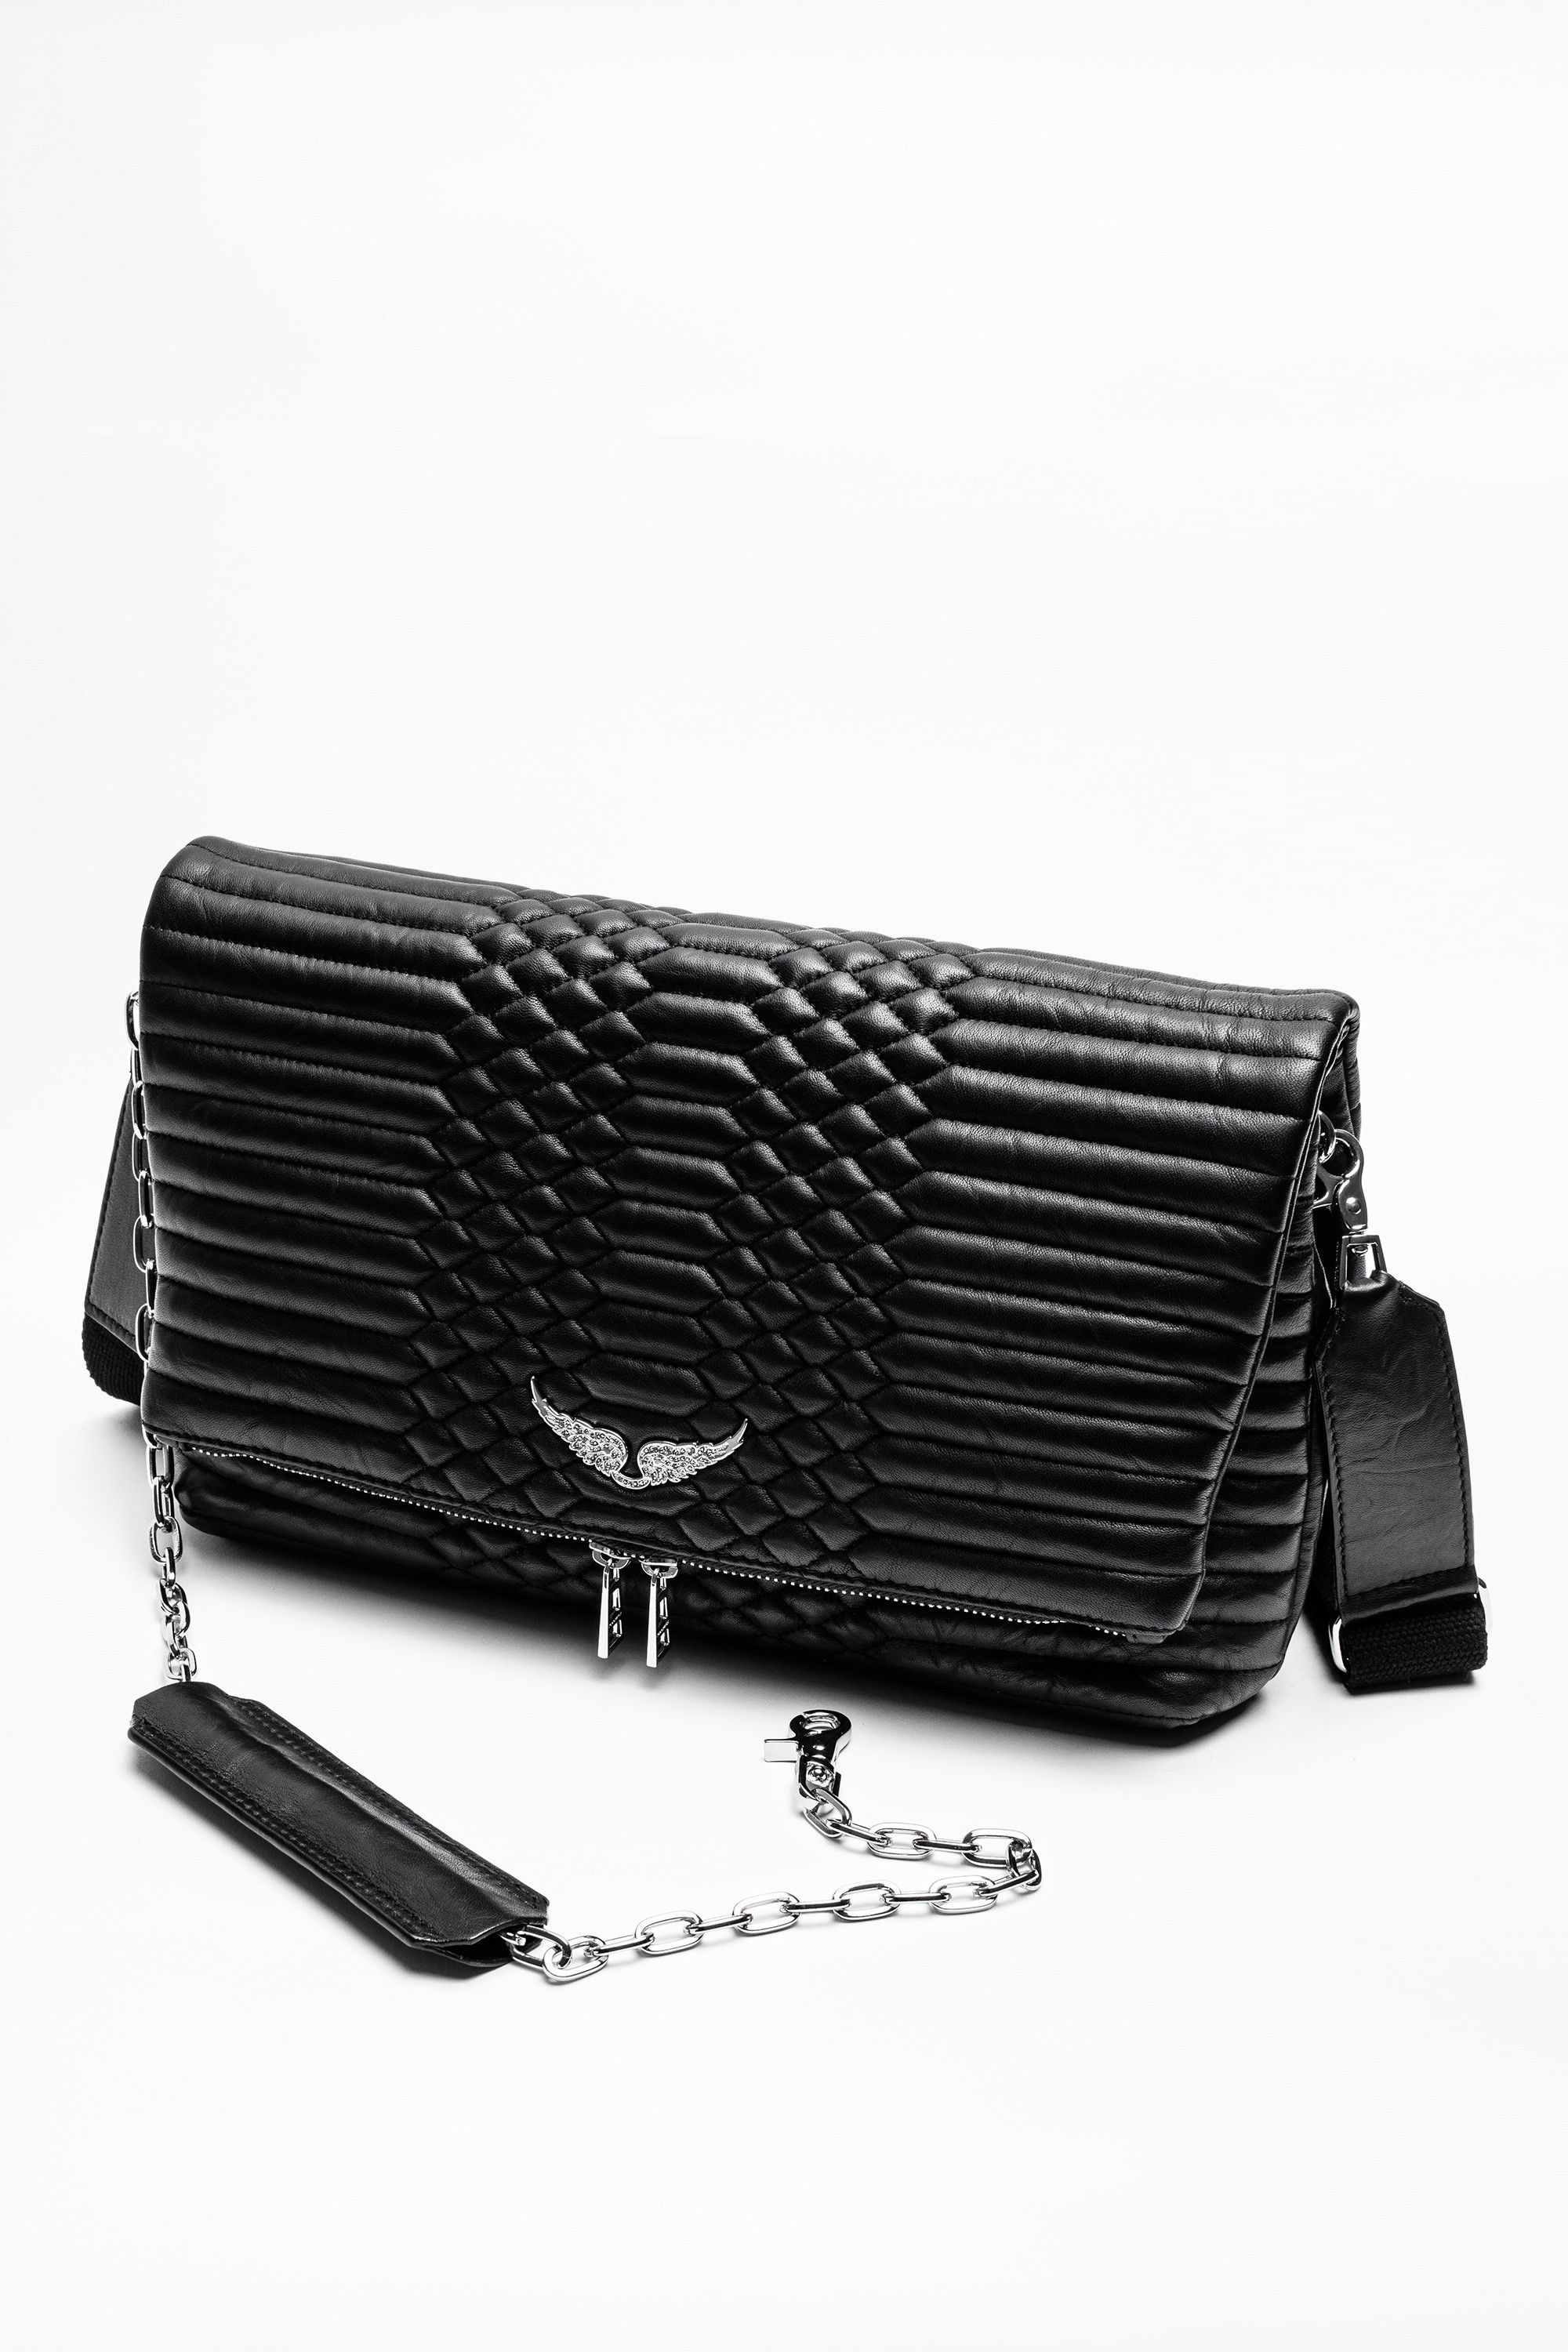 Zadig Voltaire Rocky Xl Matelasse Bag Zadig And Voltaire Bags Fashion Handbags